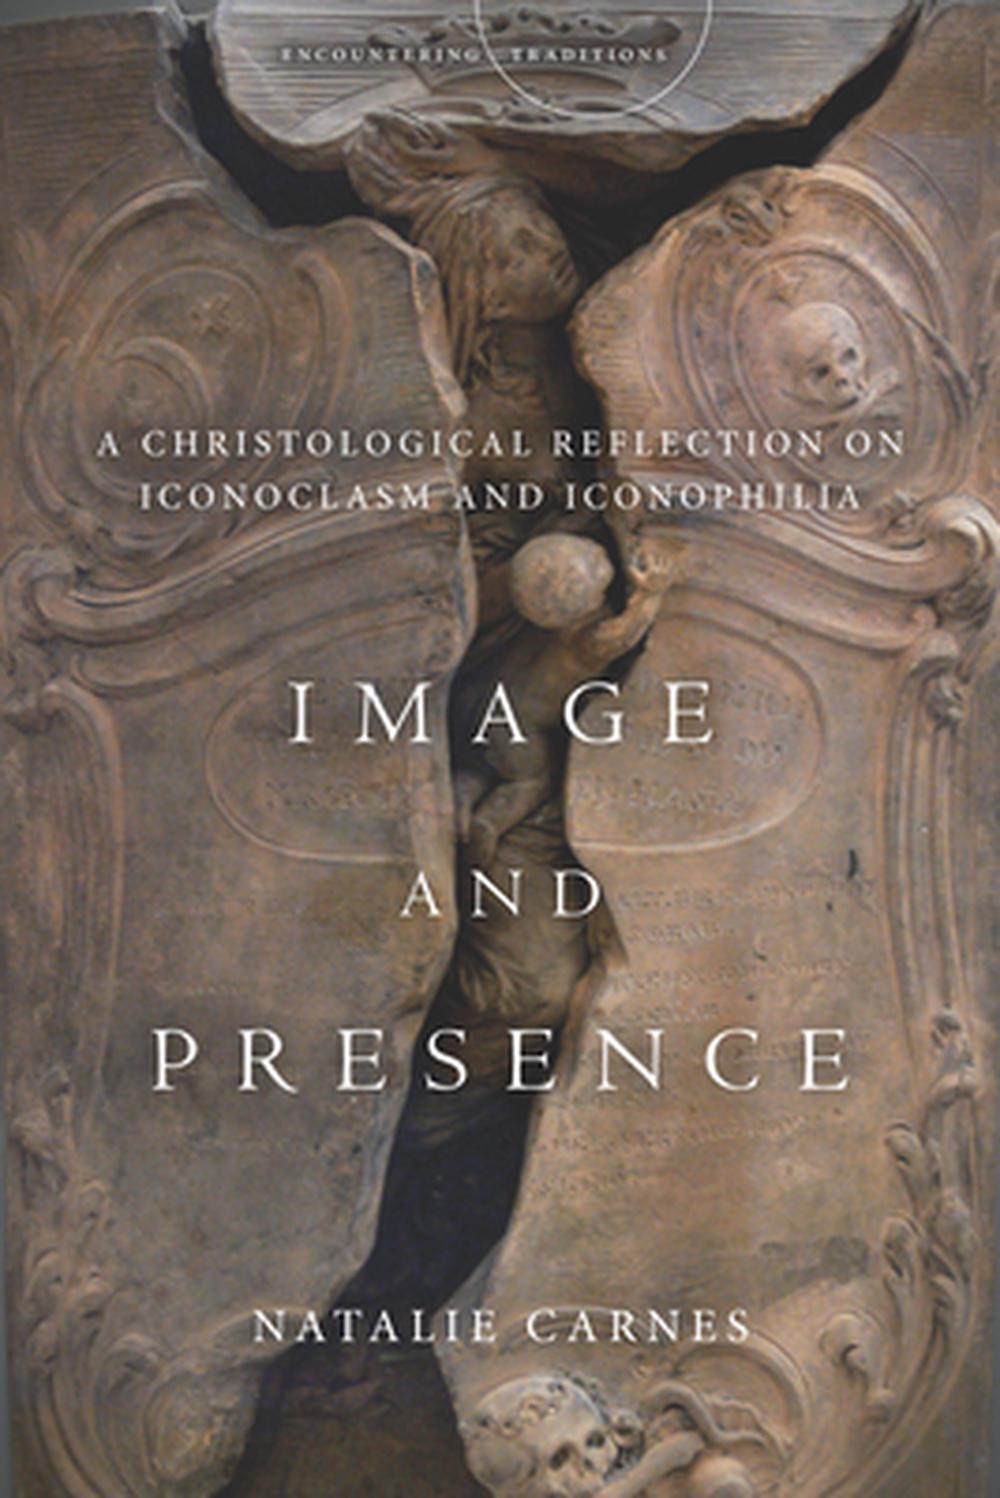 Image and Presence: A Christological Reflection on Iconoclasm and Iconophilia (Encountering Traditions)